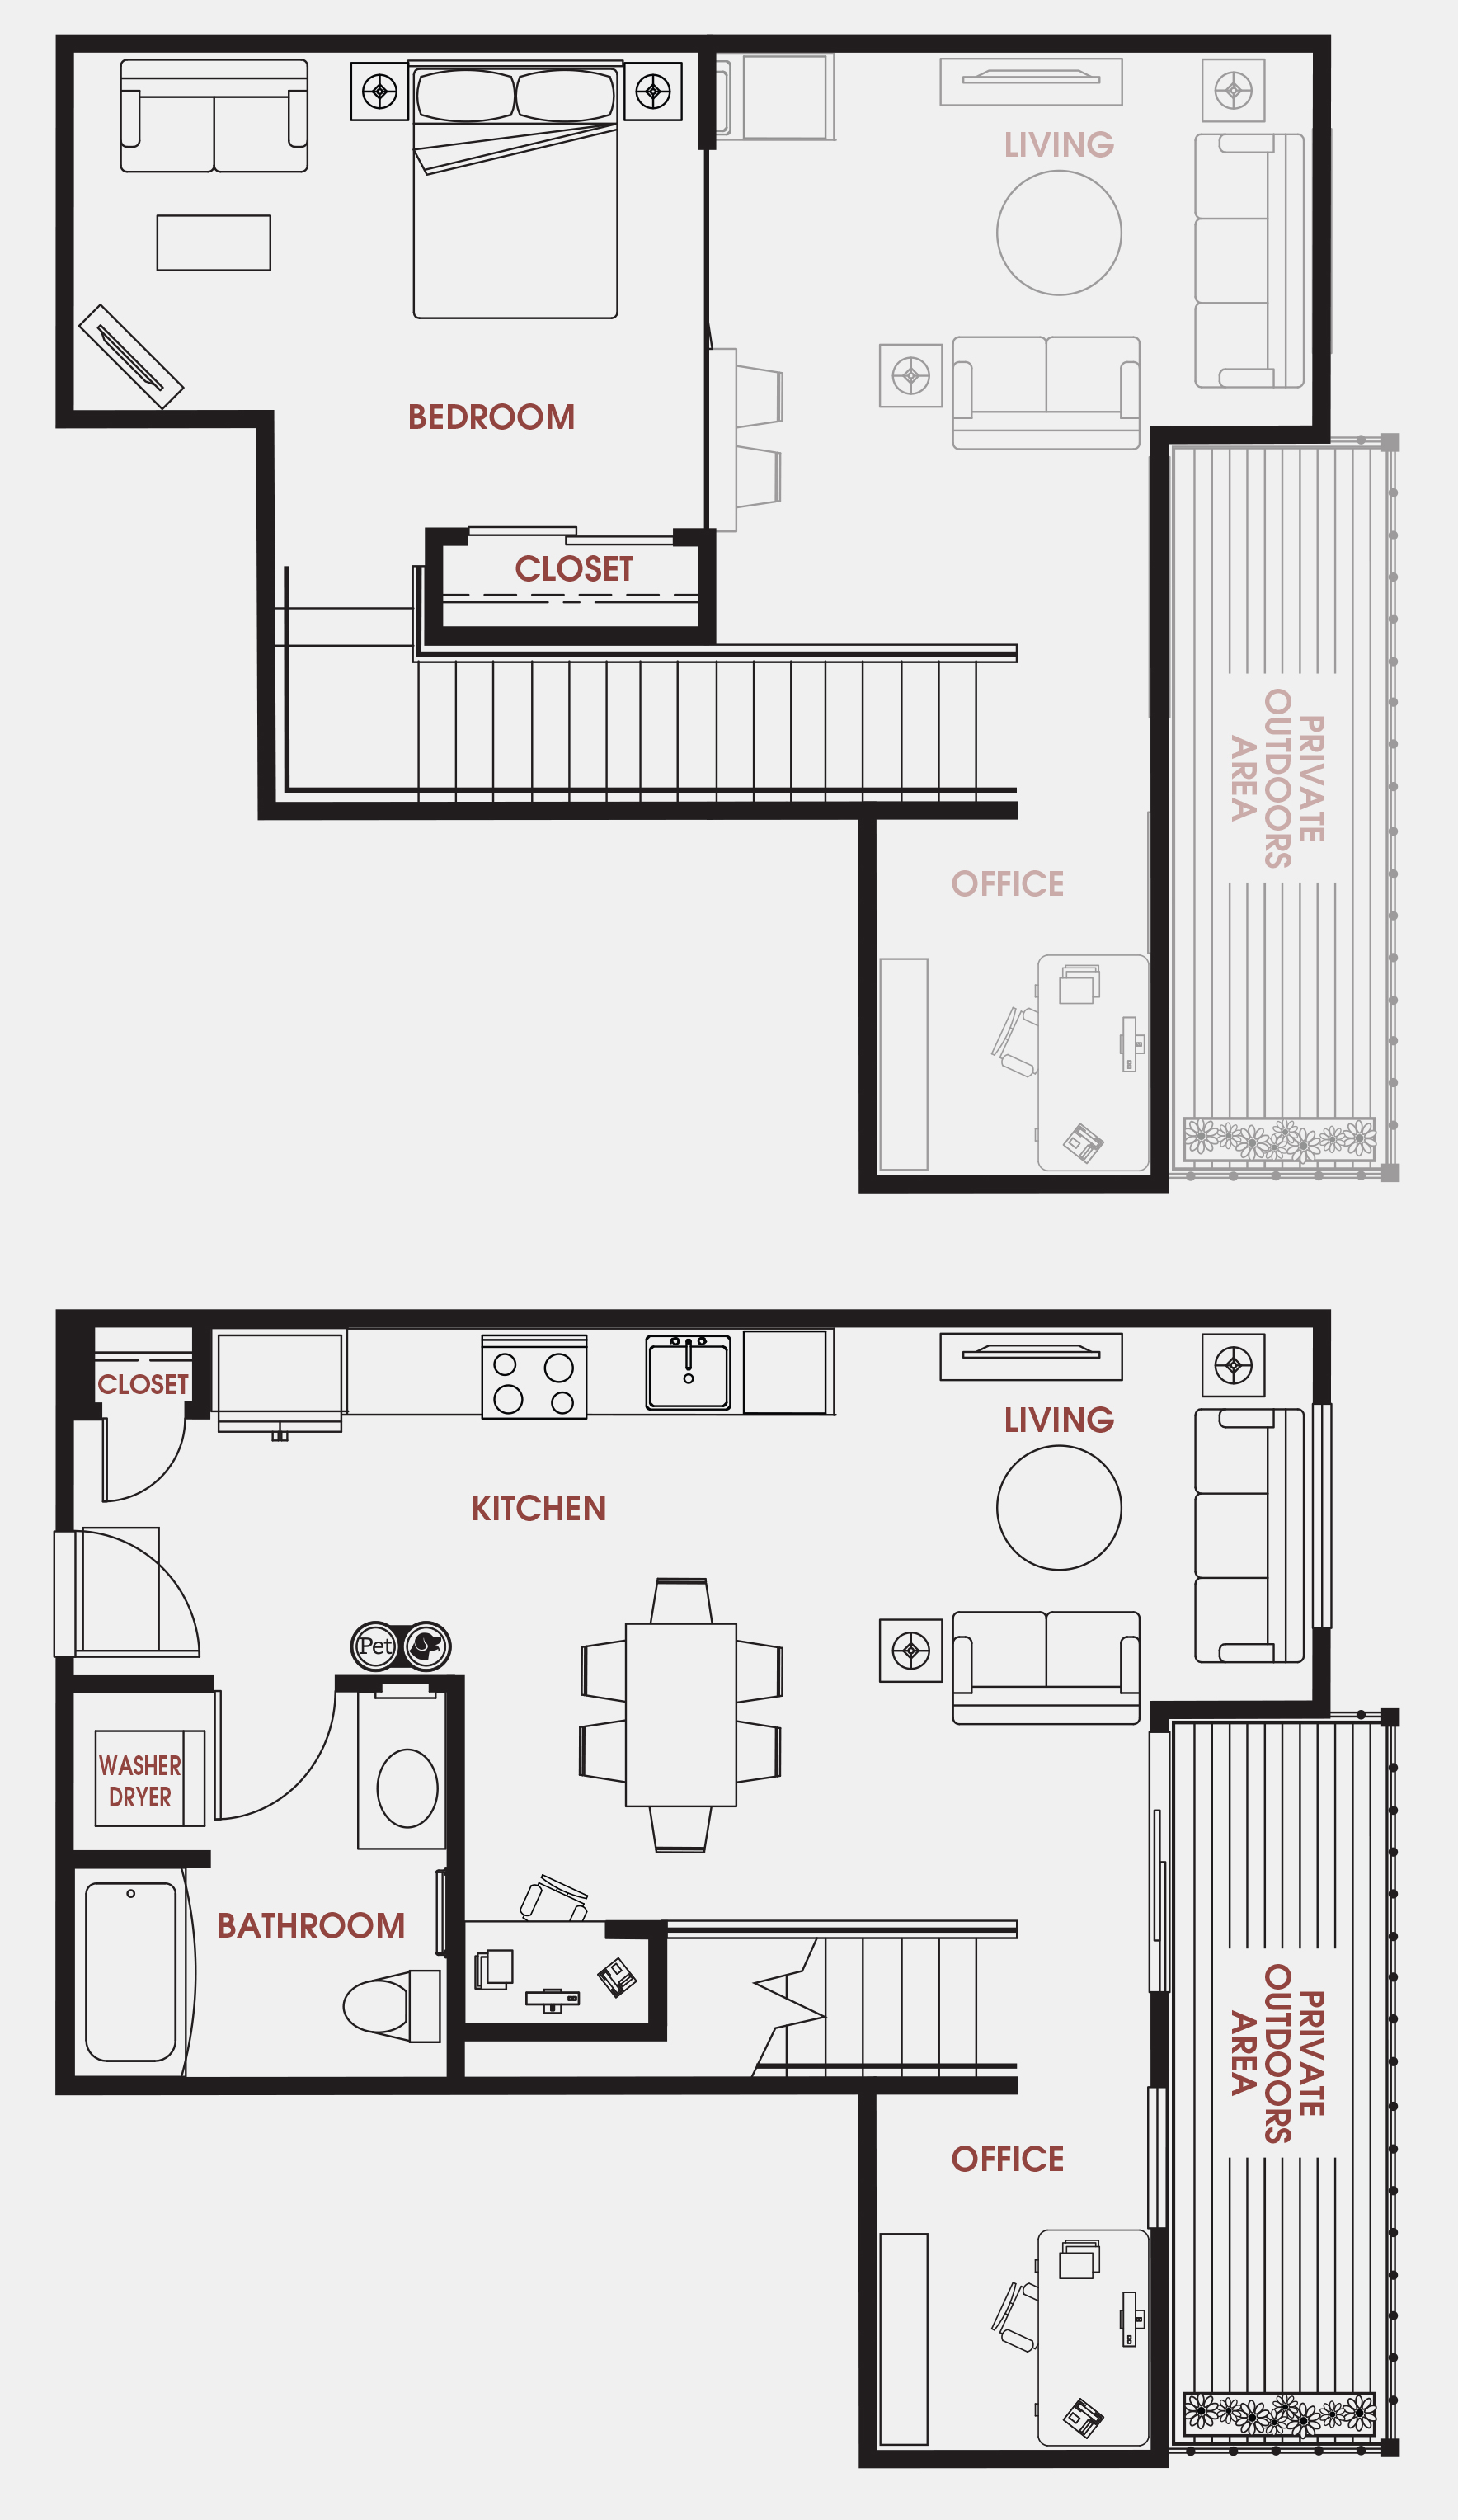 Unit - 661 Floorplan